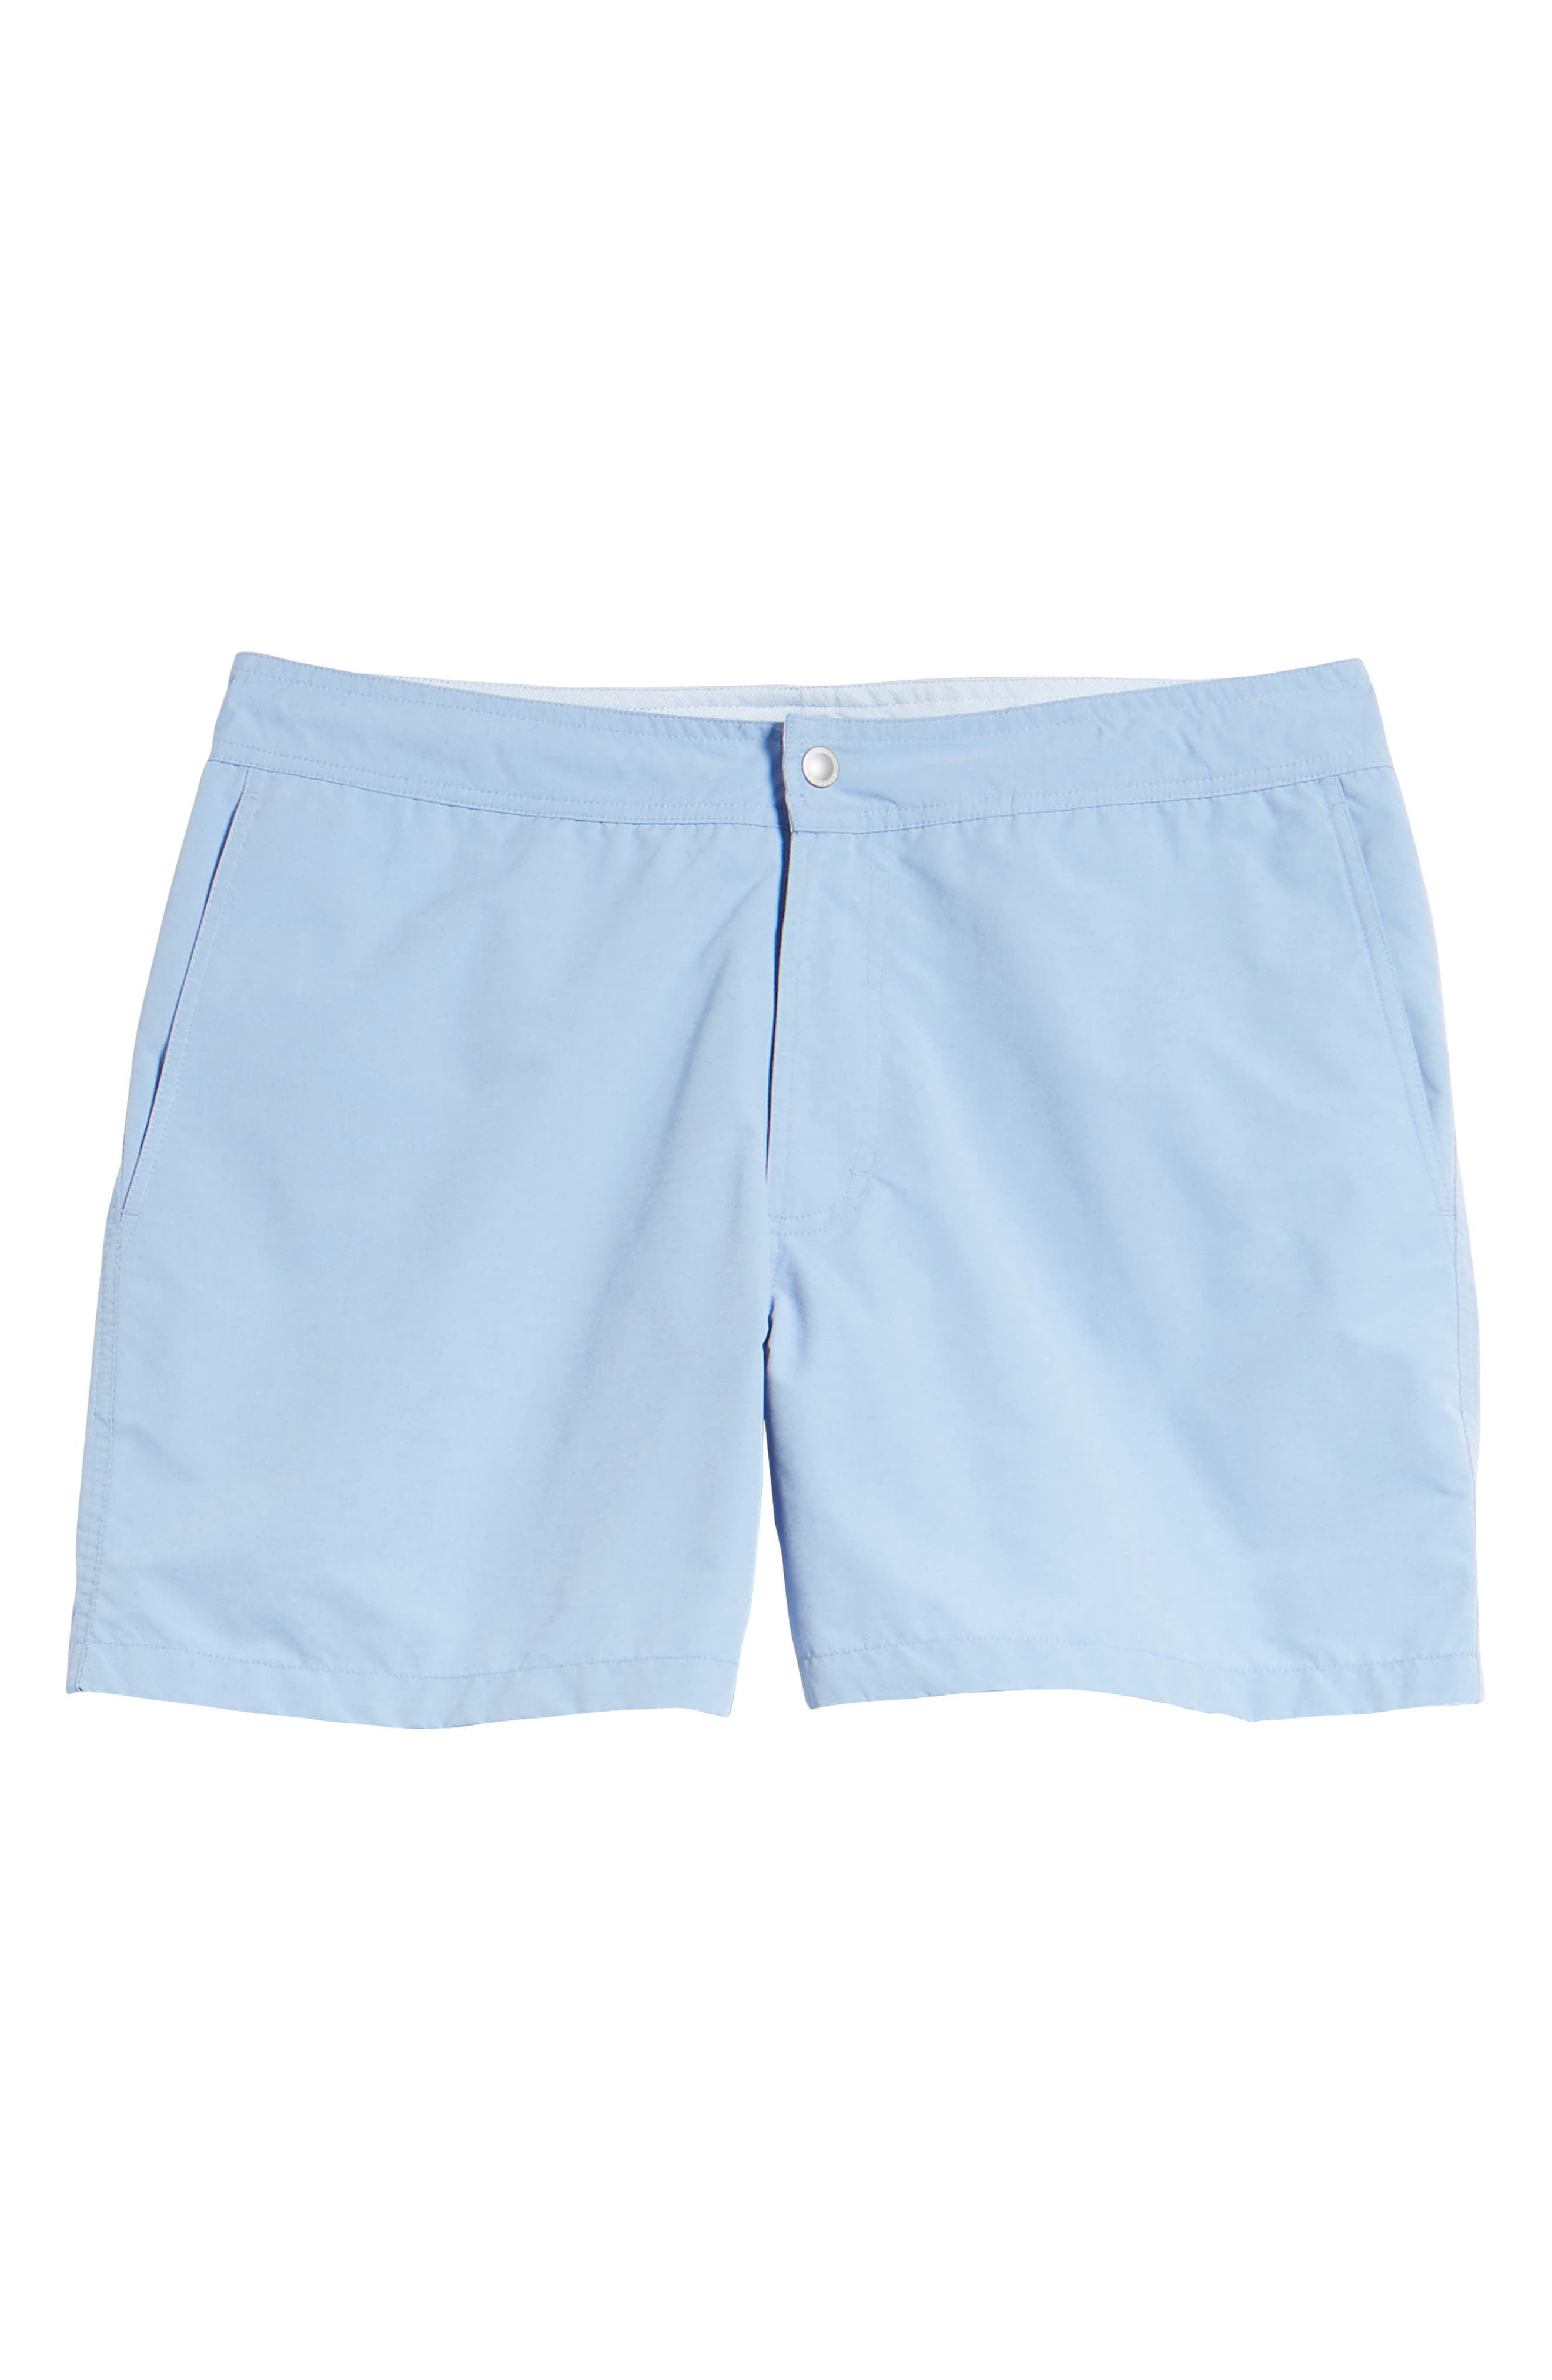 Solid 5-Inch Swim Trunks,                             Alternate thumbnail 6, color,                             Blue Chambray